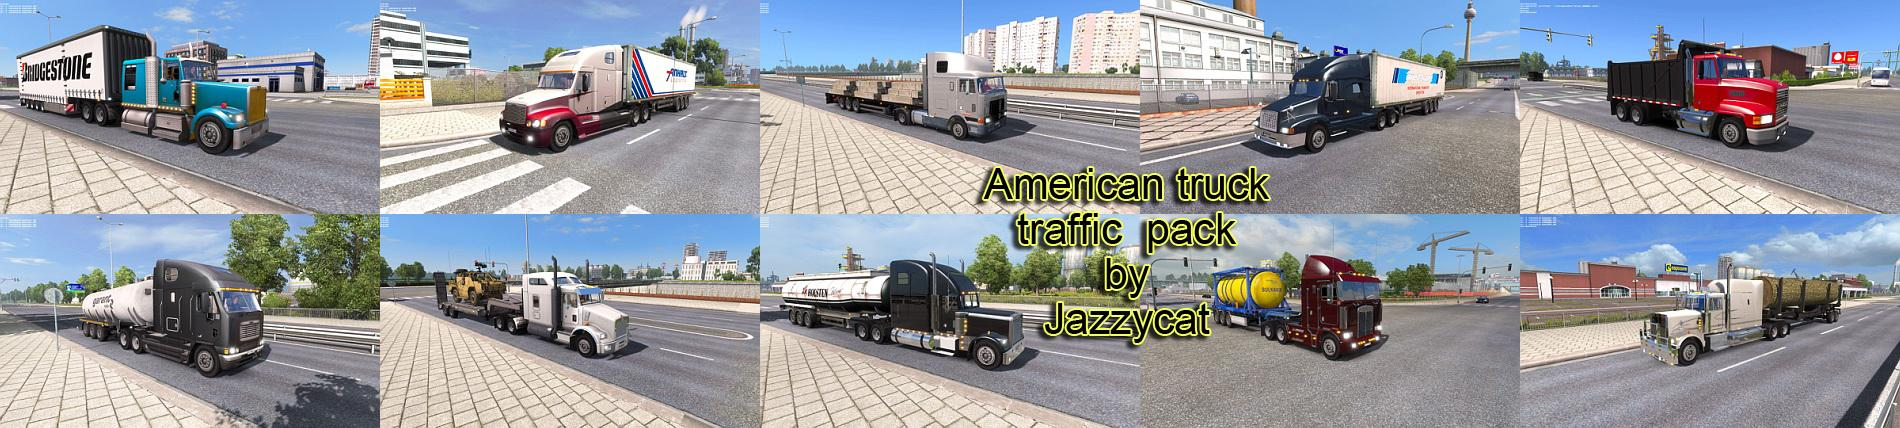 american-truck-traffic-pack-by-jazzycat-v1-0-1_1